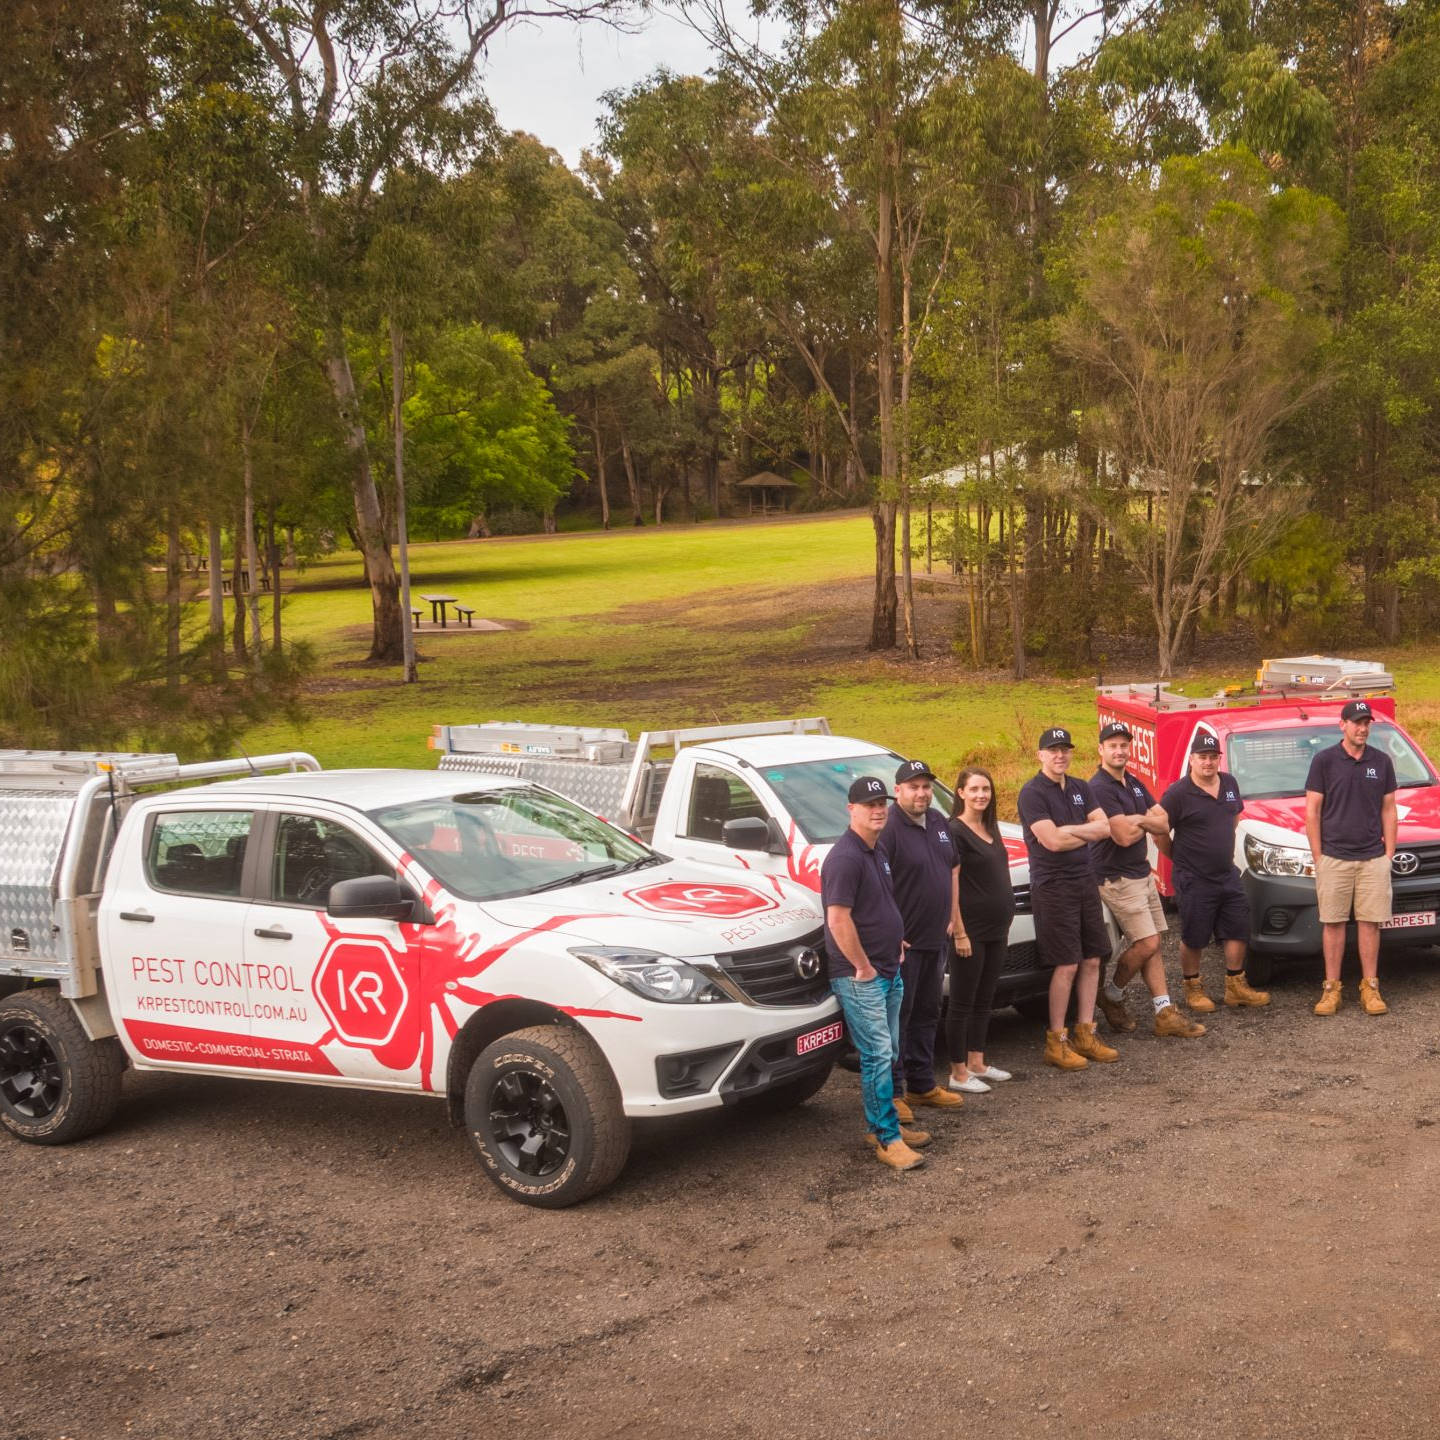 St Ives Pest Control & Termite Inspections Specialists KR Pest Control